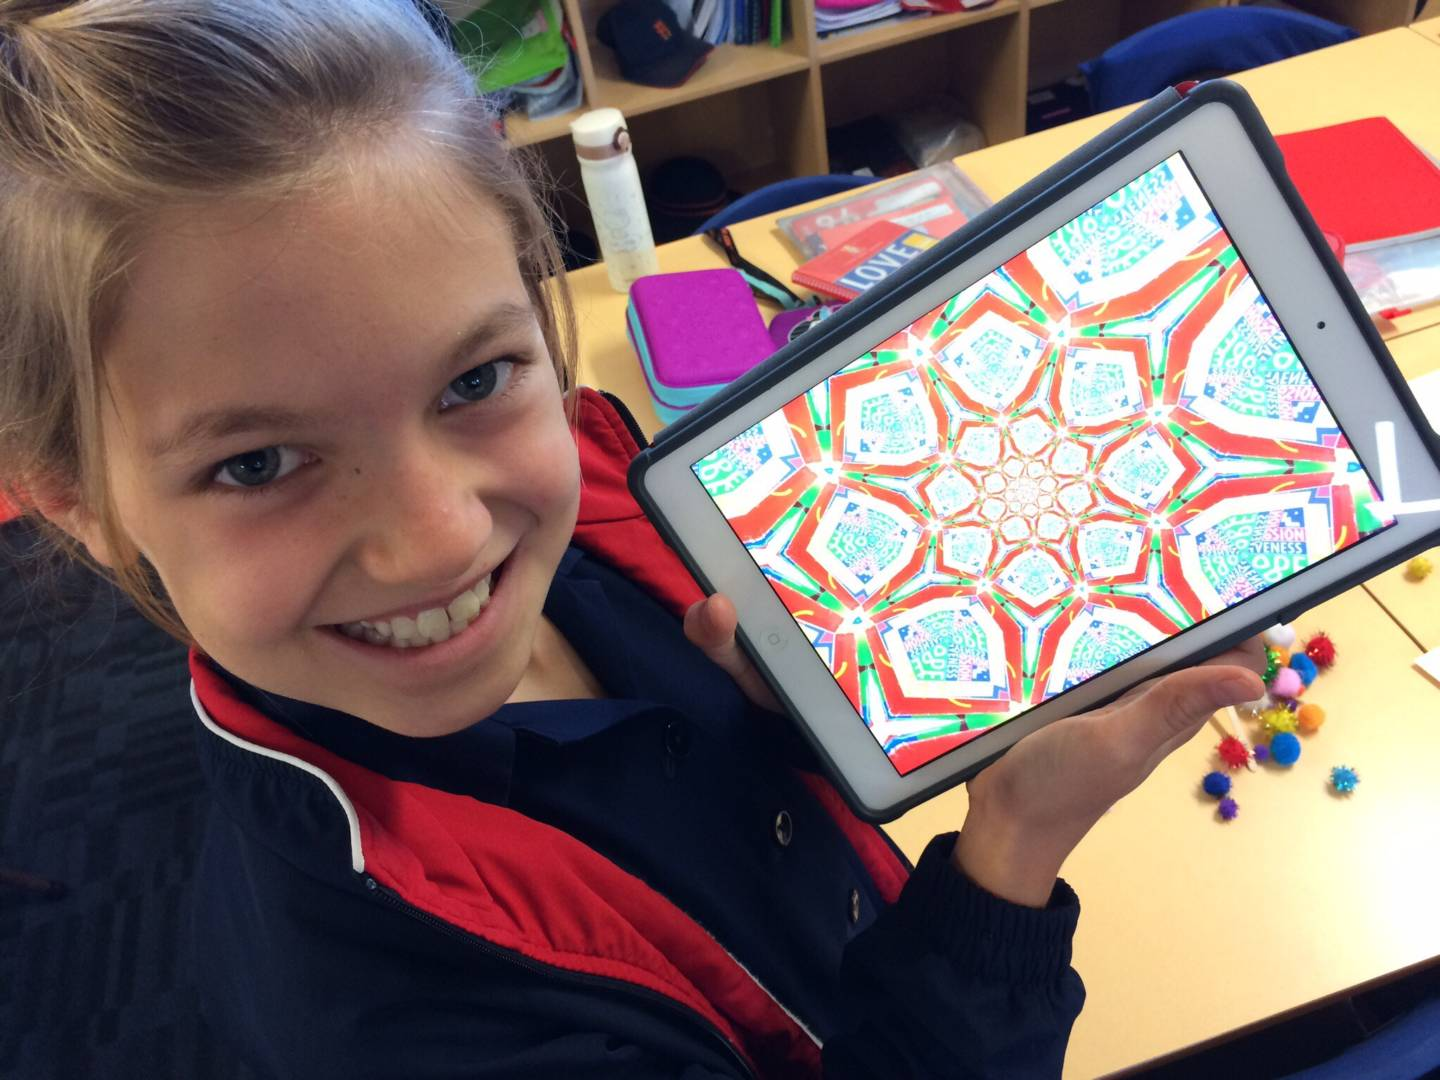 St. Hilda's student with her kaleidoscope camera.